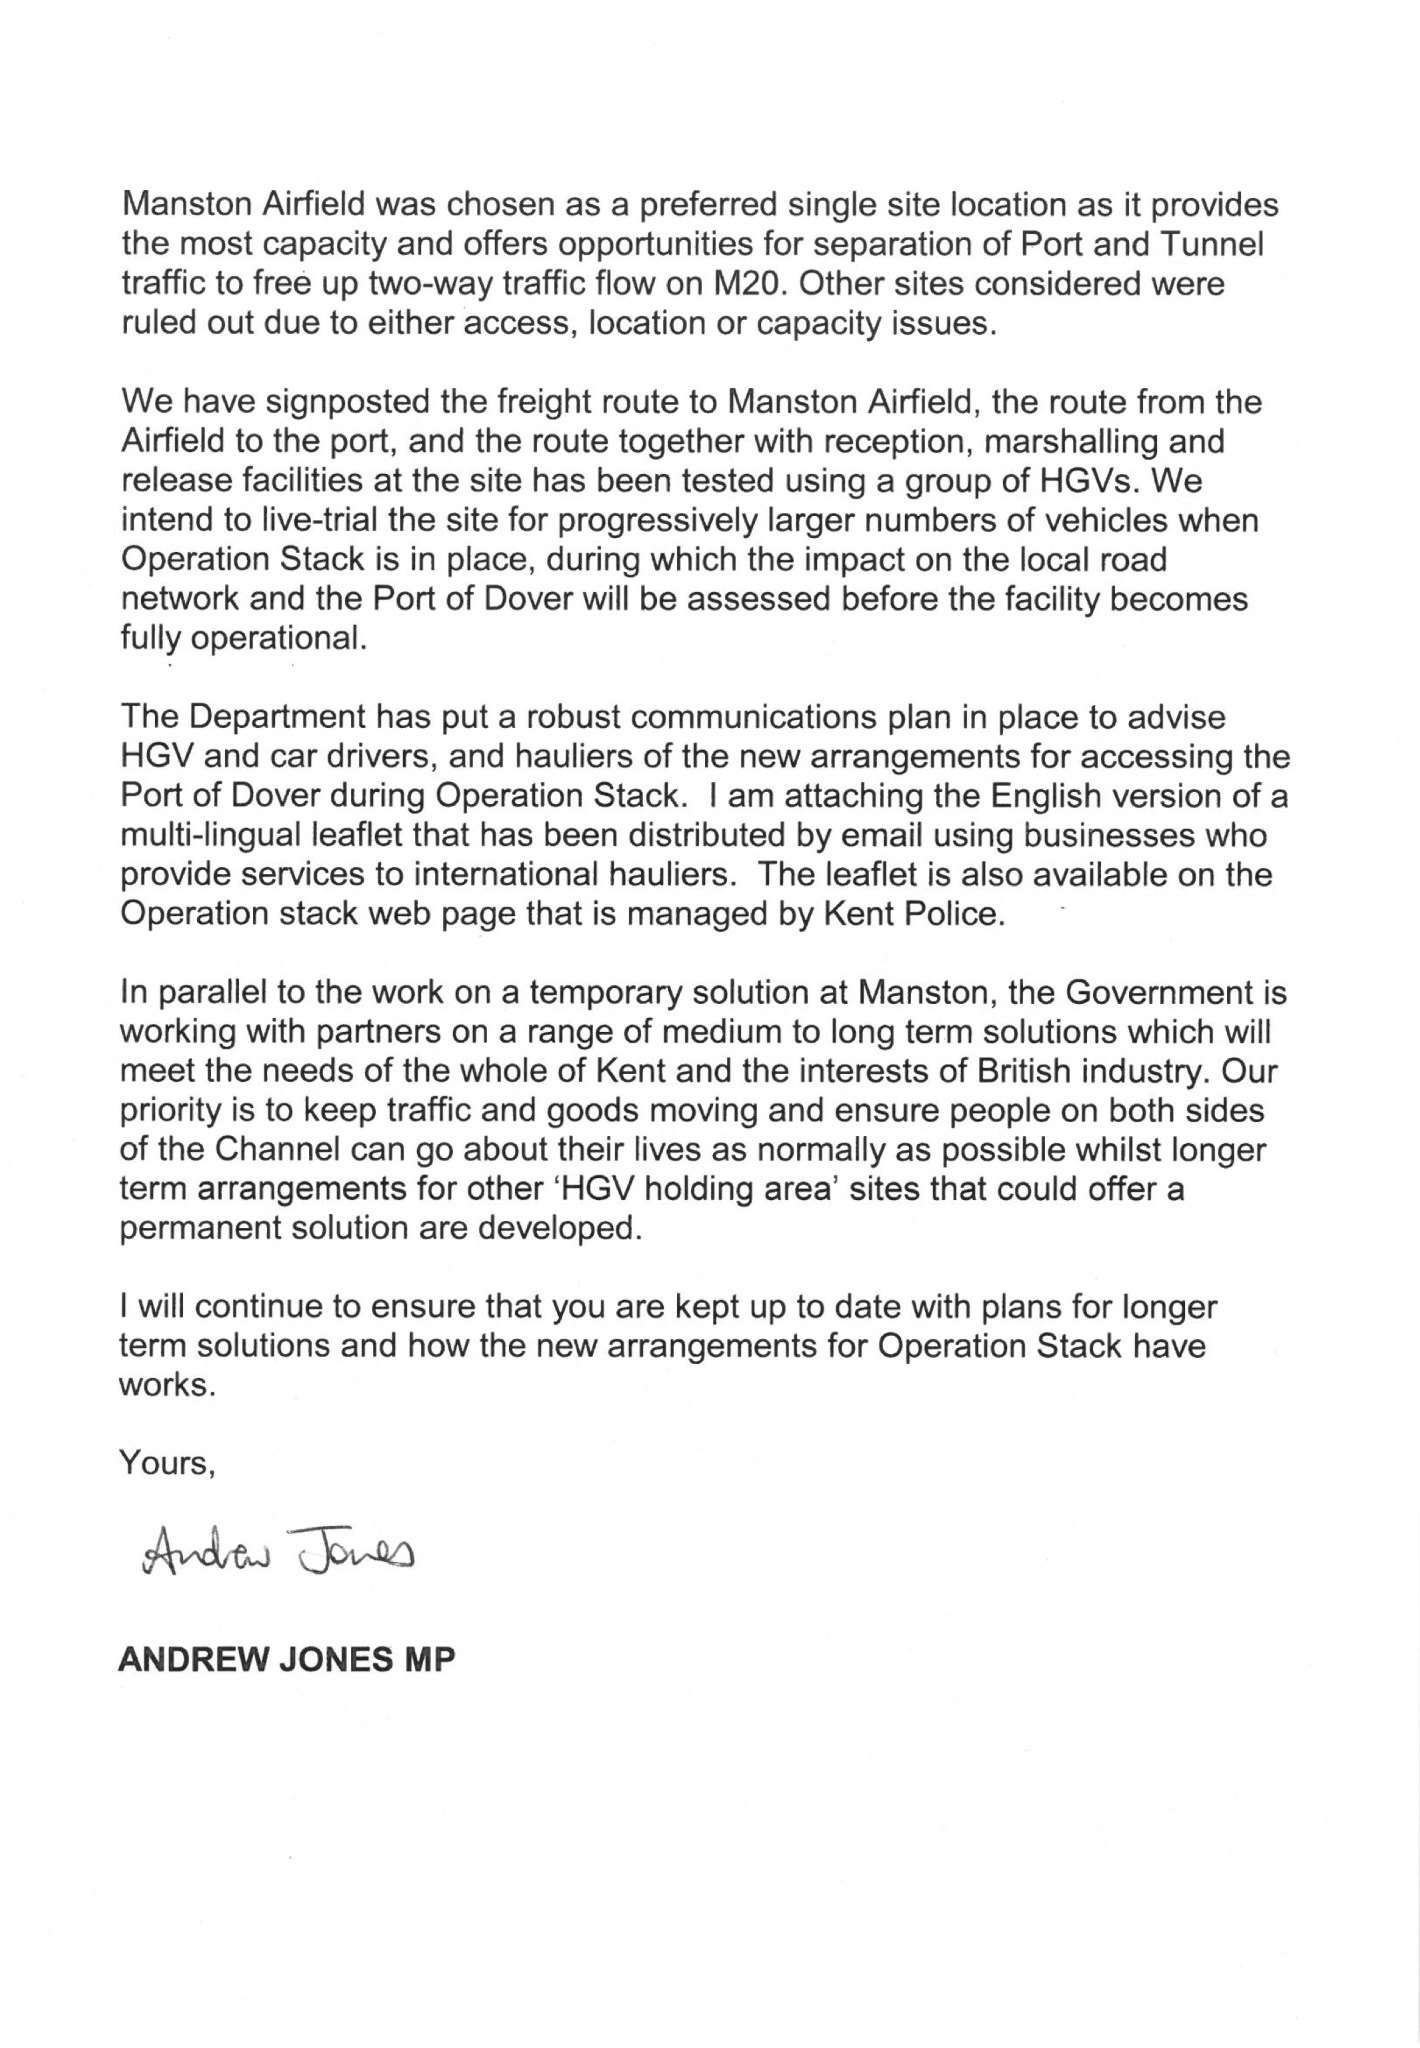 operation stack and manston airfield letter to canterbury image image